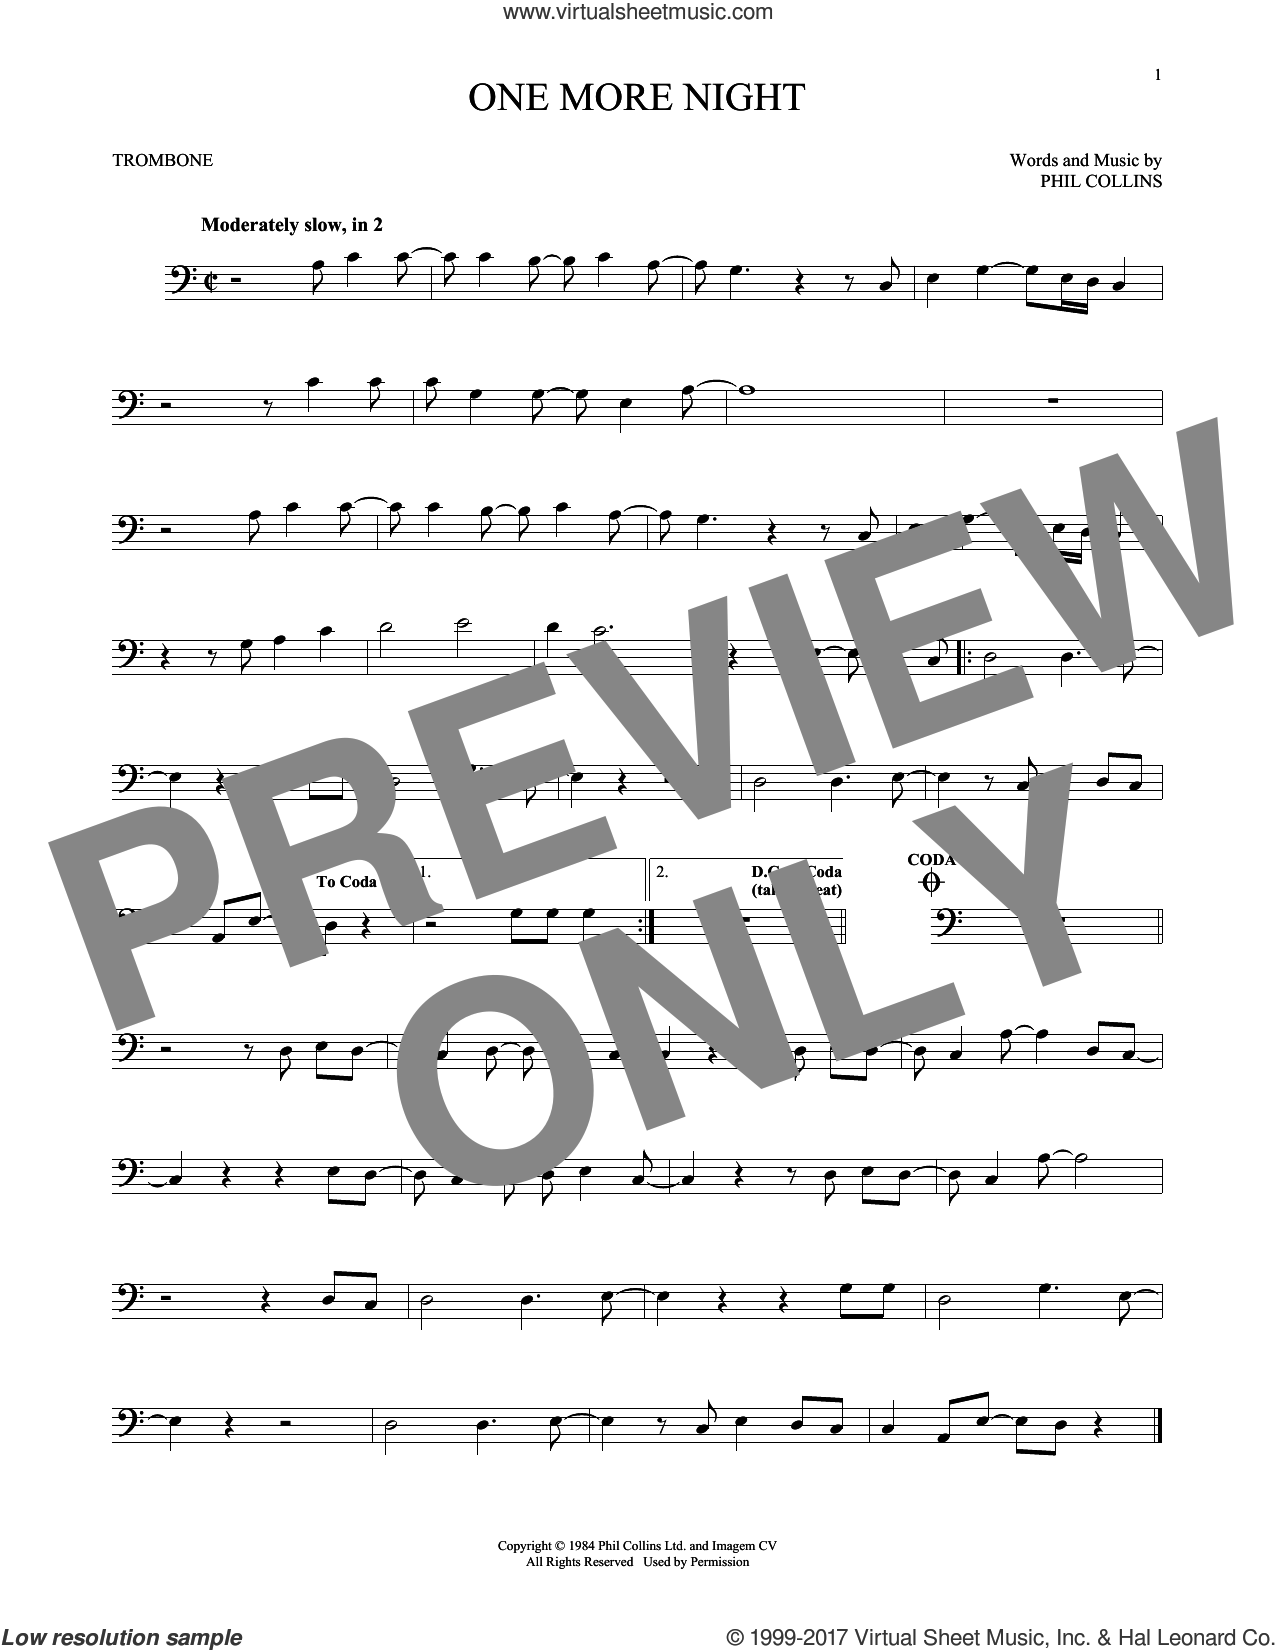 One More Night sheet music for trombone solo by Phil Collins, intermediate skill level